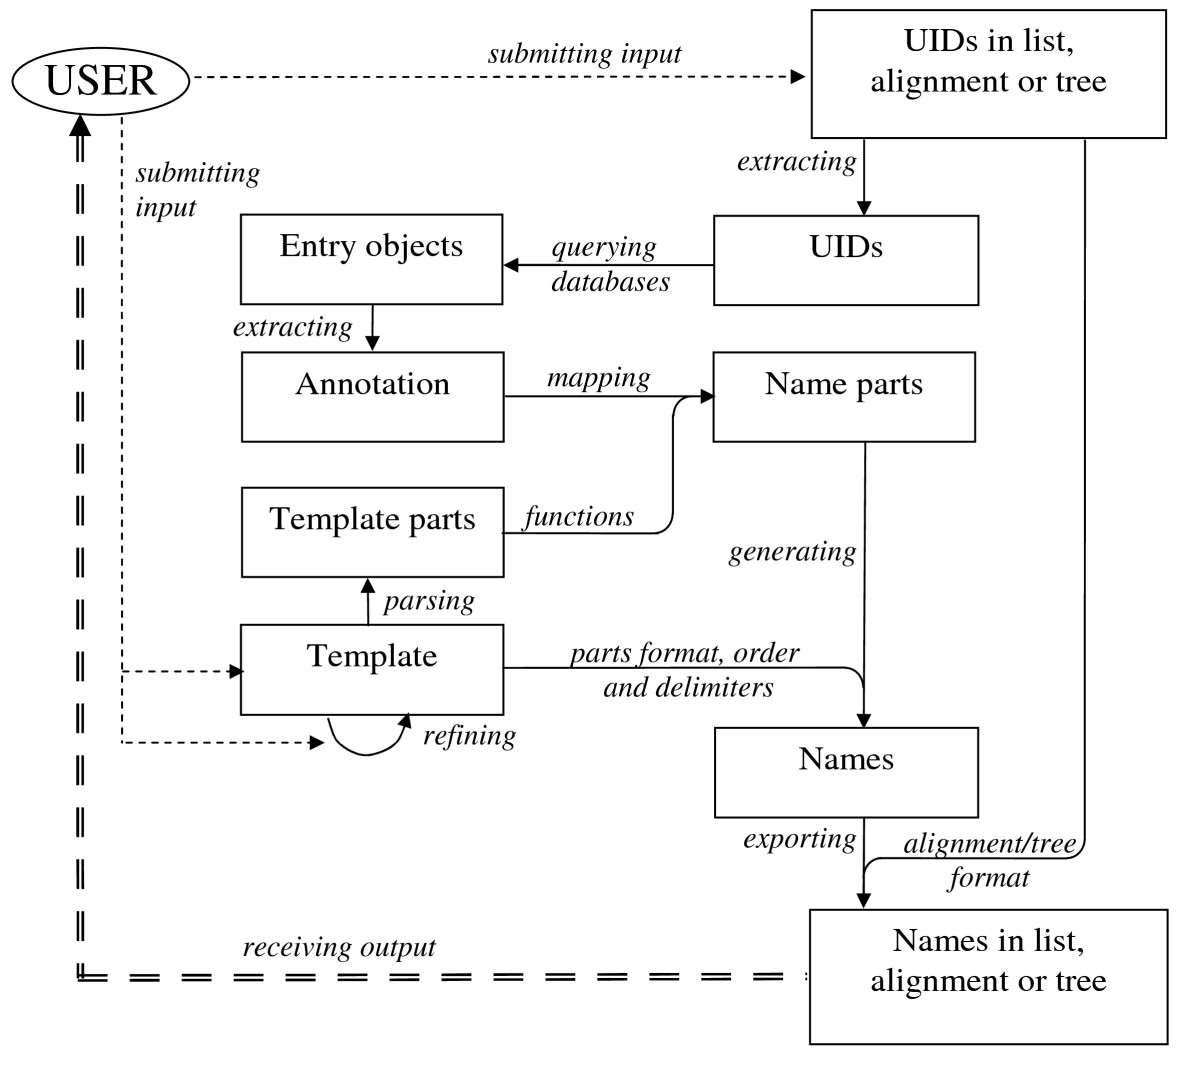 http://static-content.springer.com/image/art%3A10.1186%2F1471-2105-10-251/MediaObjects/12859_2009_Article_2981_Fig1_HTML.jpg